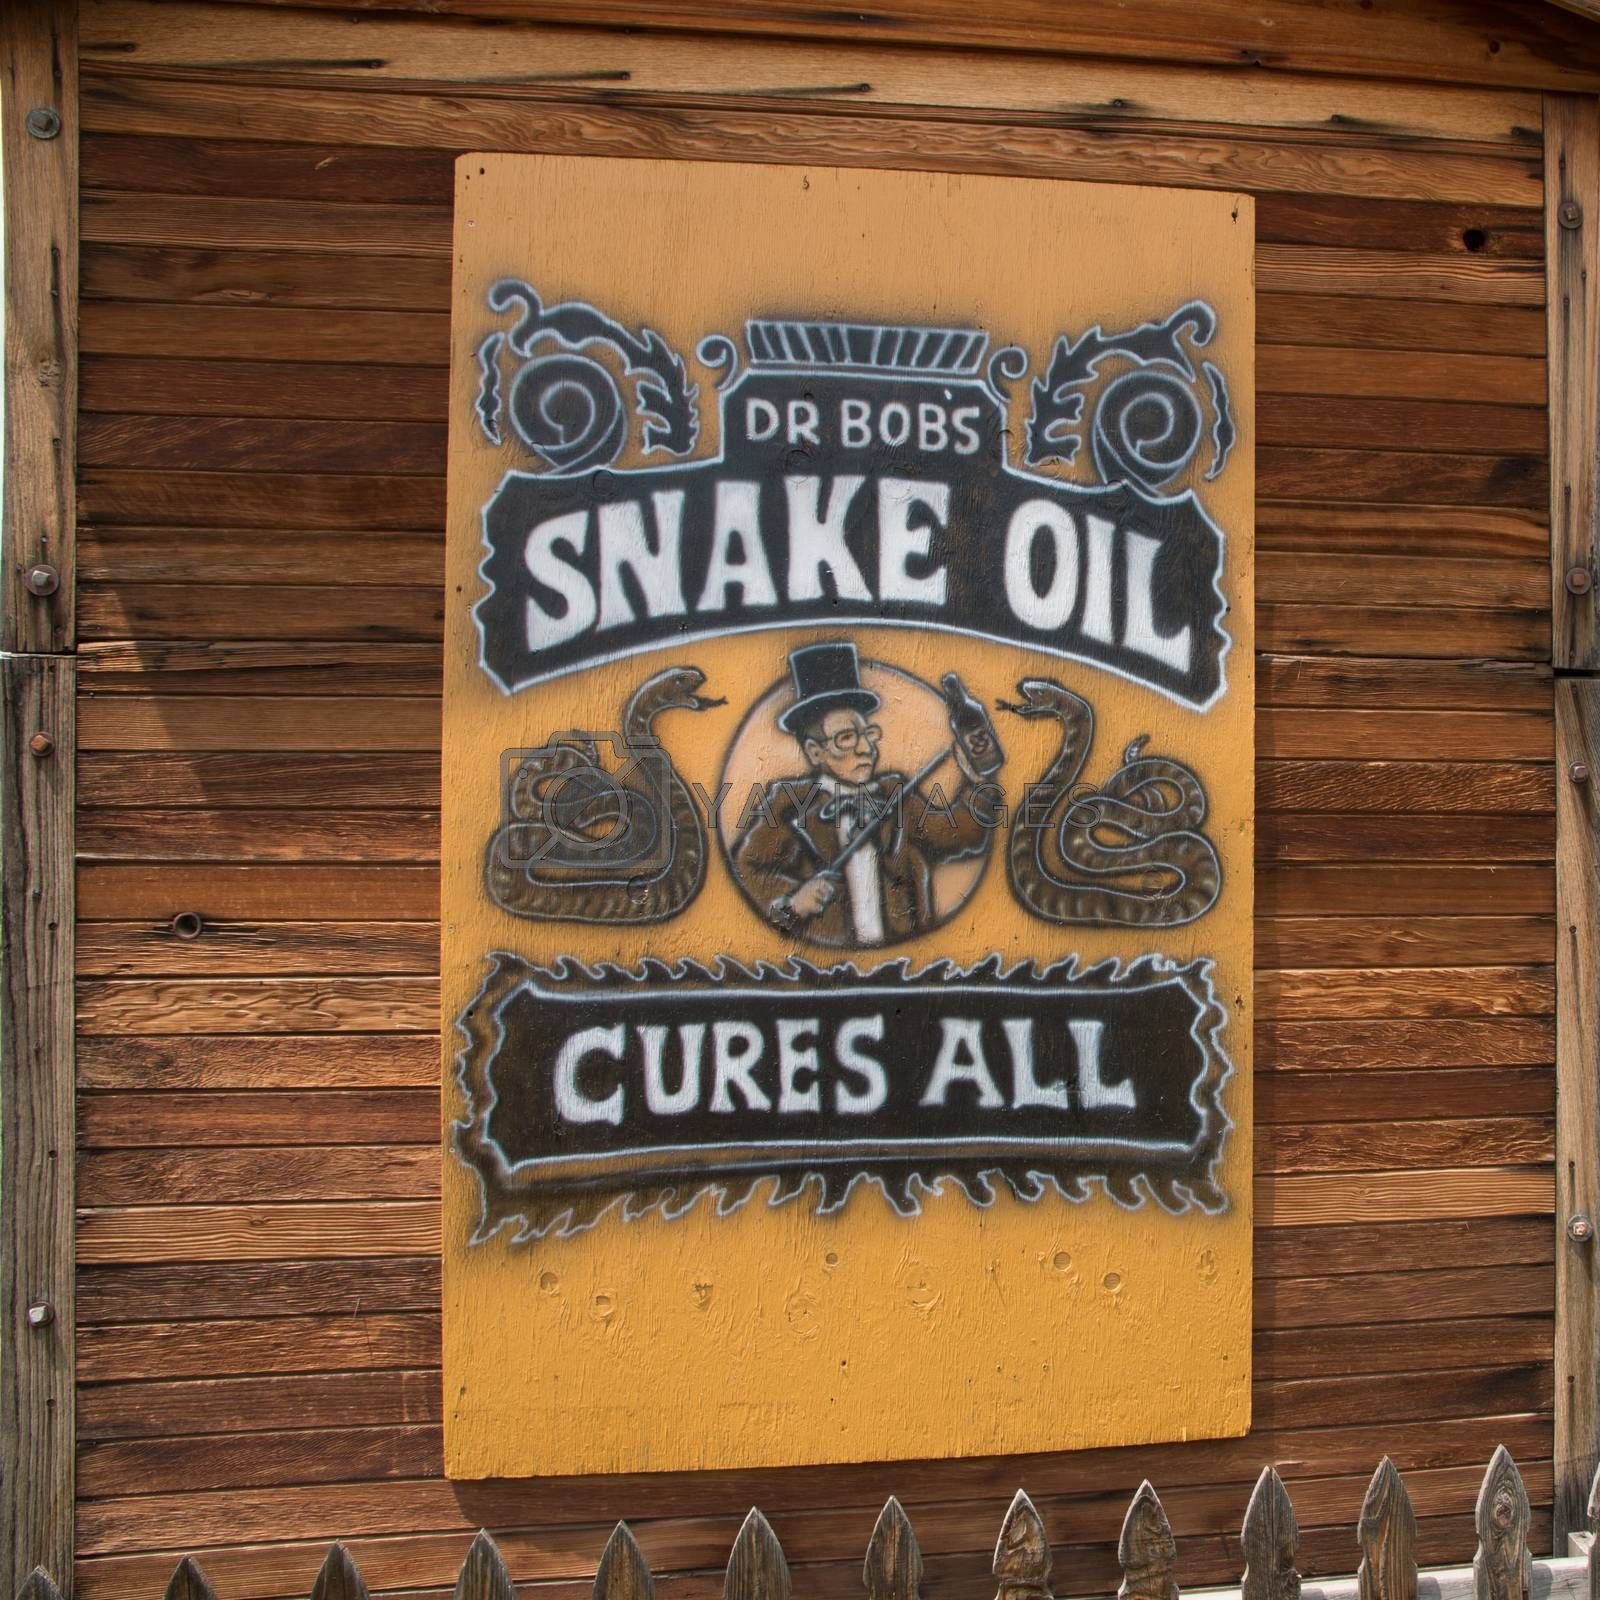 A sign for Dr Bob's Snake Oil Cure All in Masonville, CO